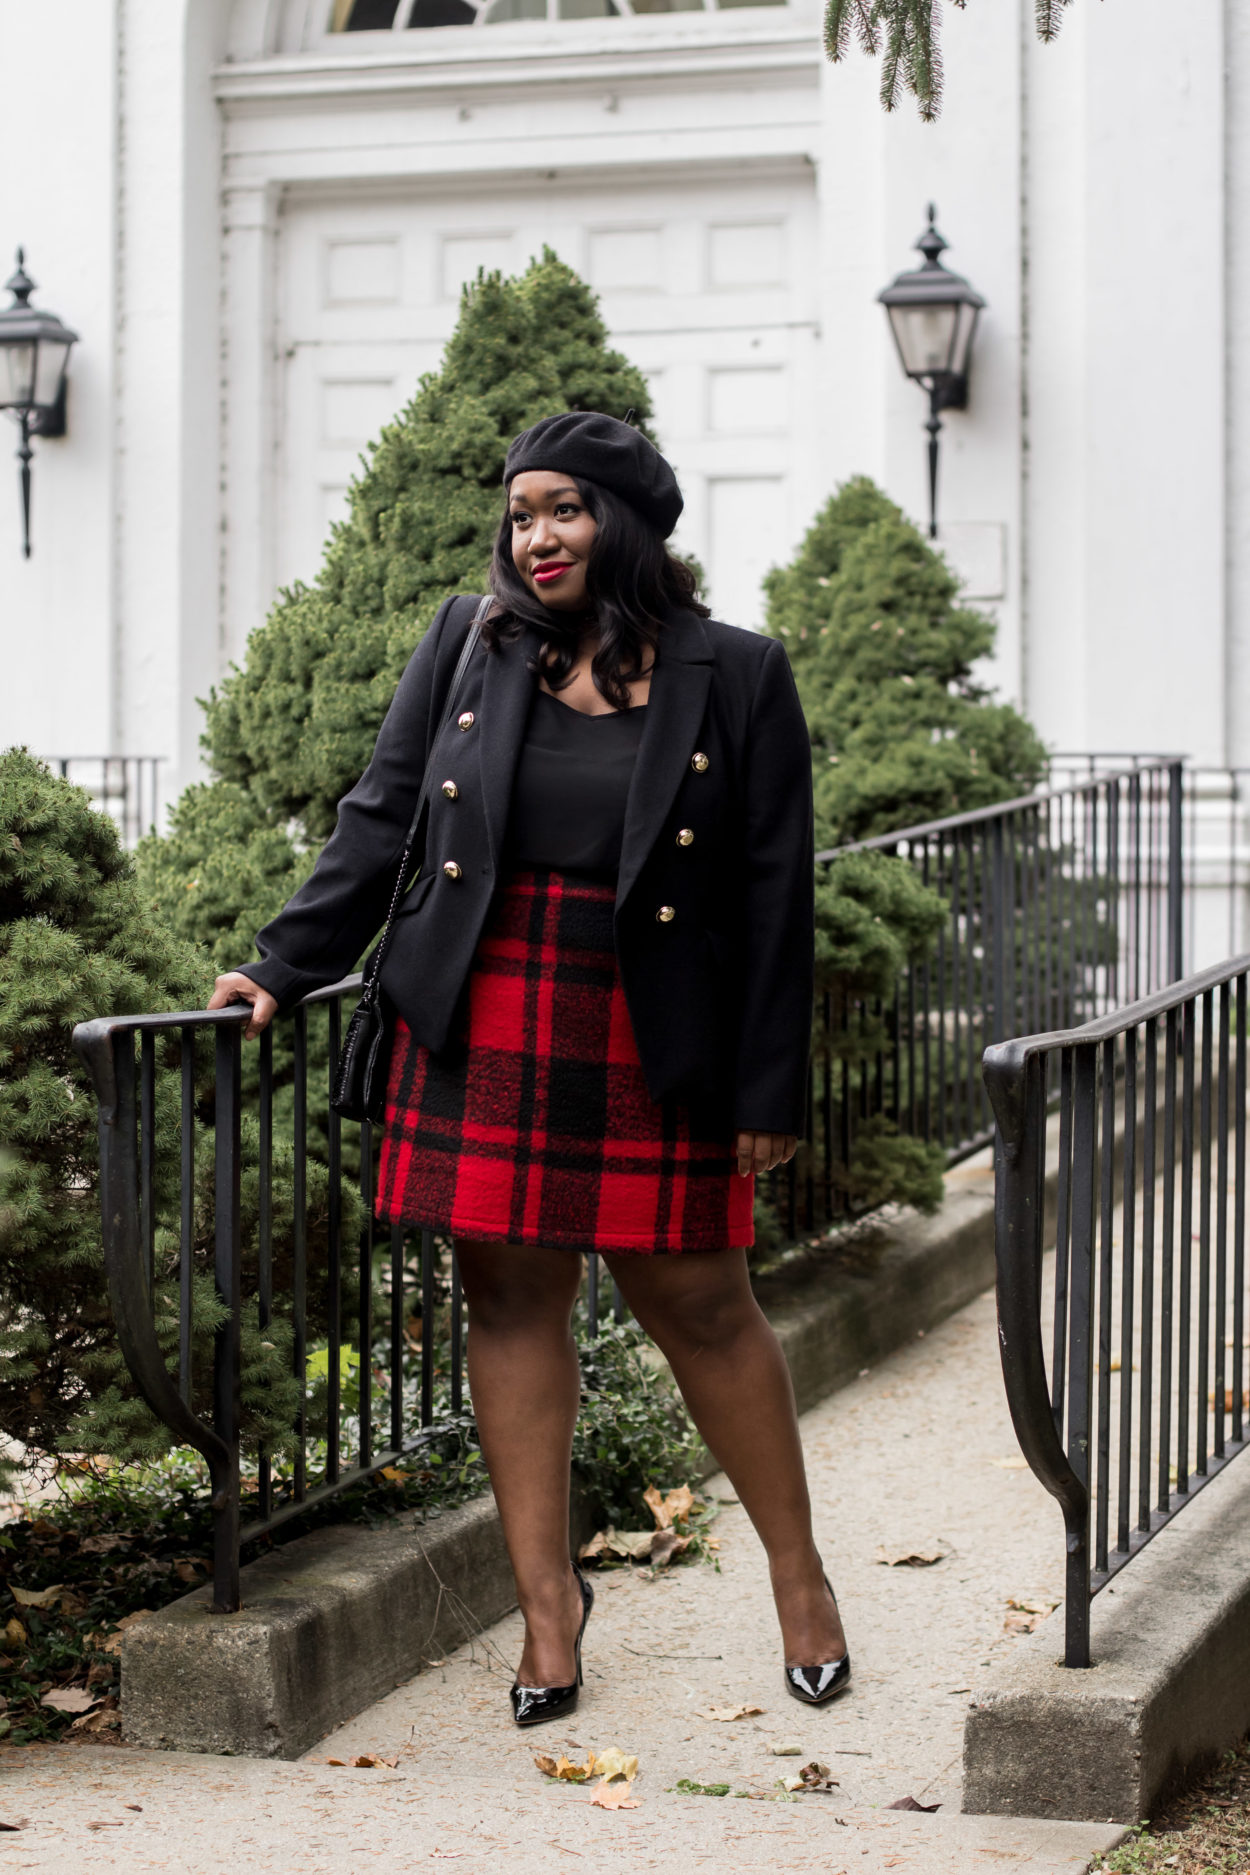 8495c8e5c2 red-plaid-skirt-holiday-outfit-idea-plus-size-fashion-blog - Shapely ...